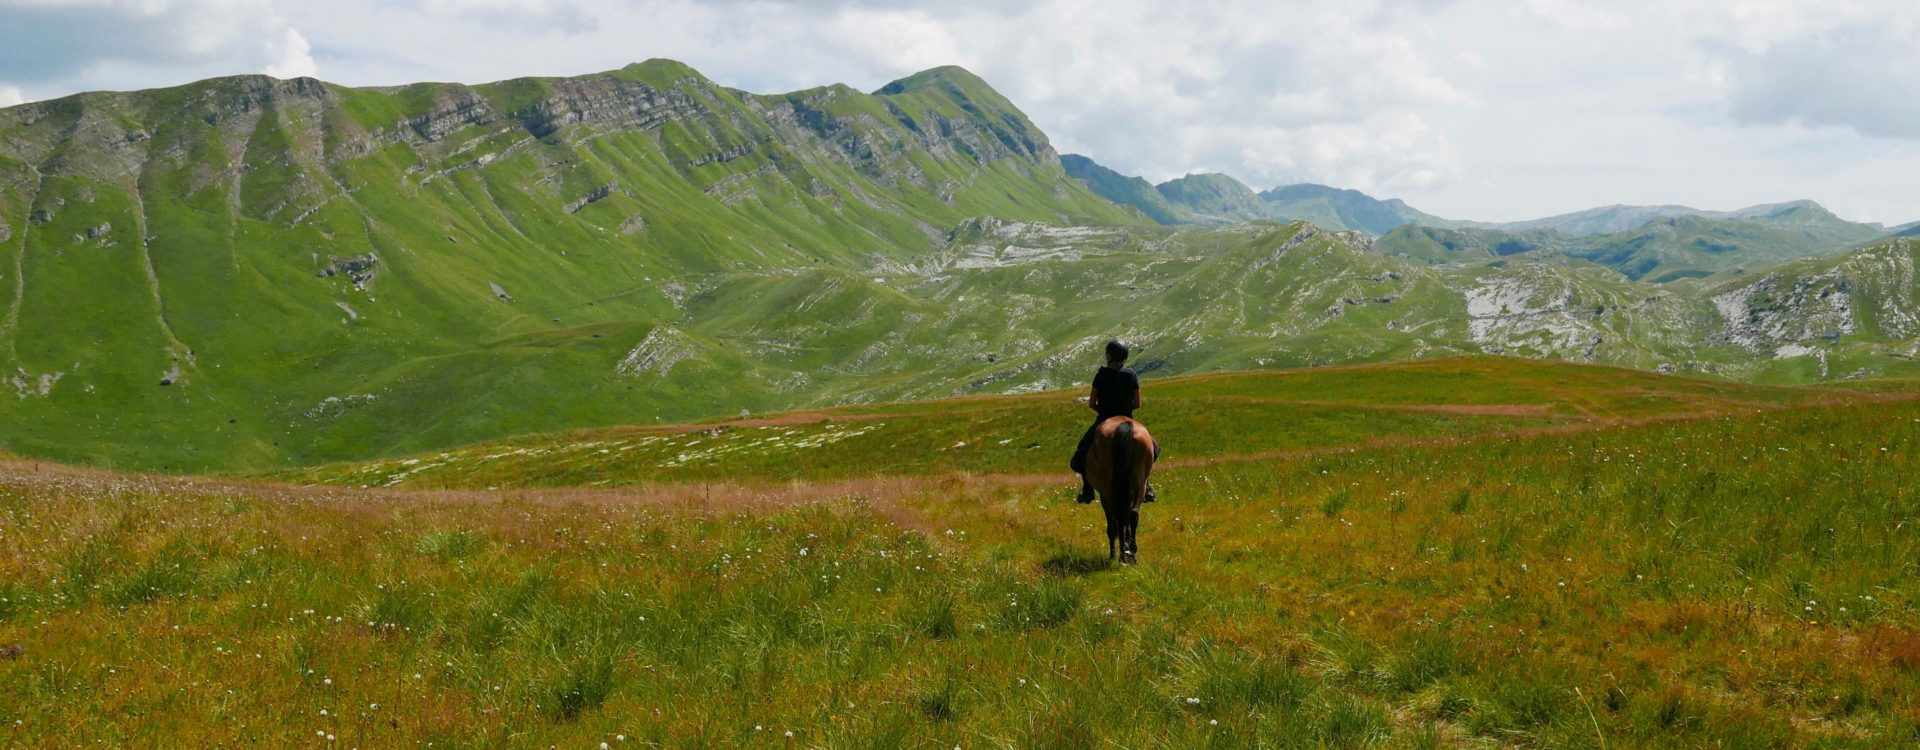 Riding in the mountains of Montenegro